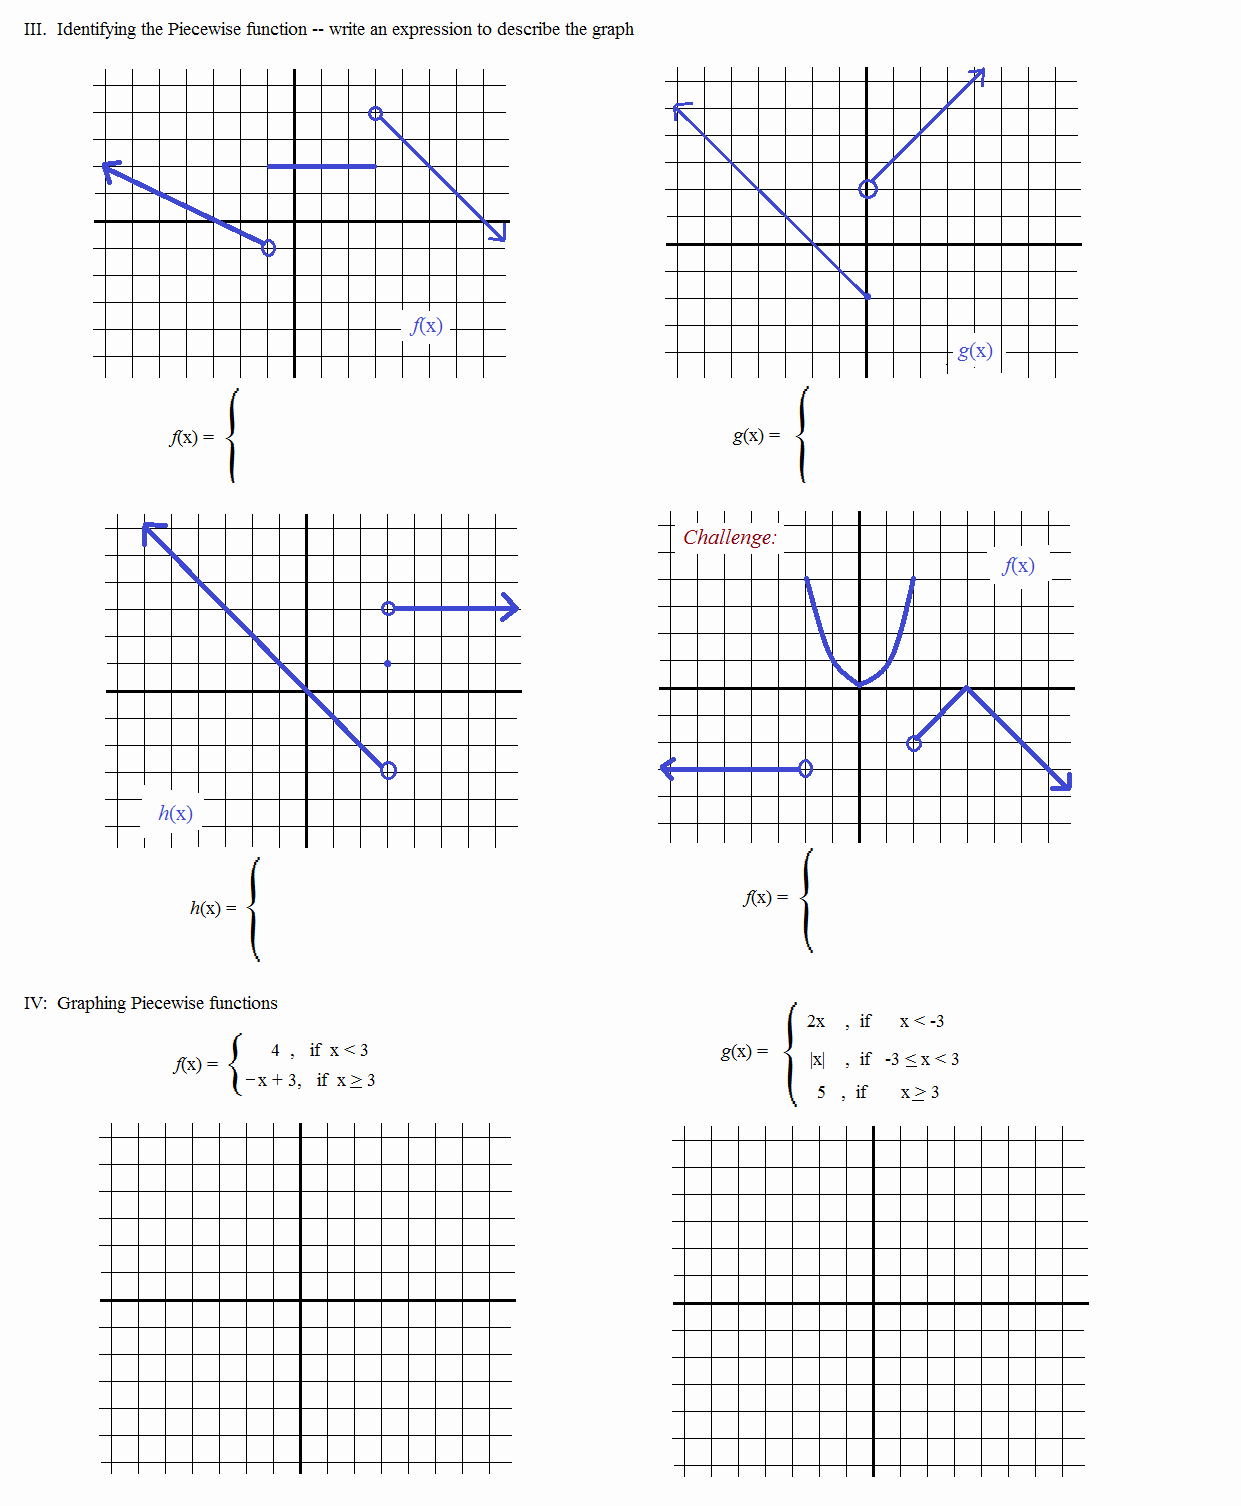 Worksheet Piecewise Functions Algebra 2 Luxury 10 Best Of Algebra 2 Piecewise Function Worksheets